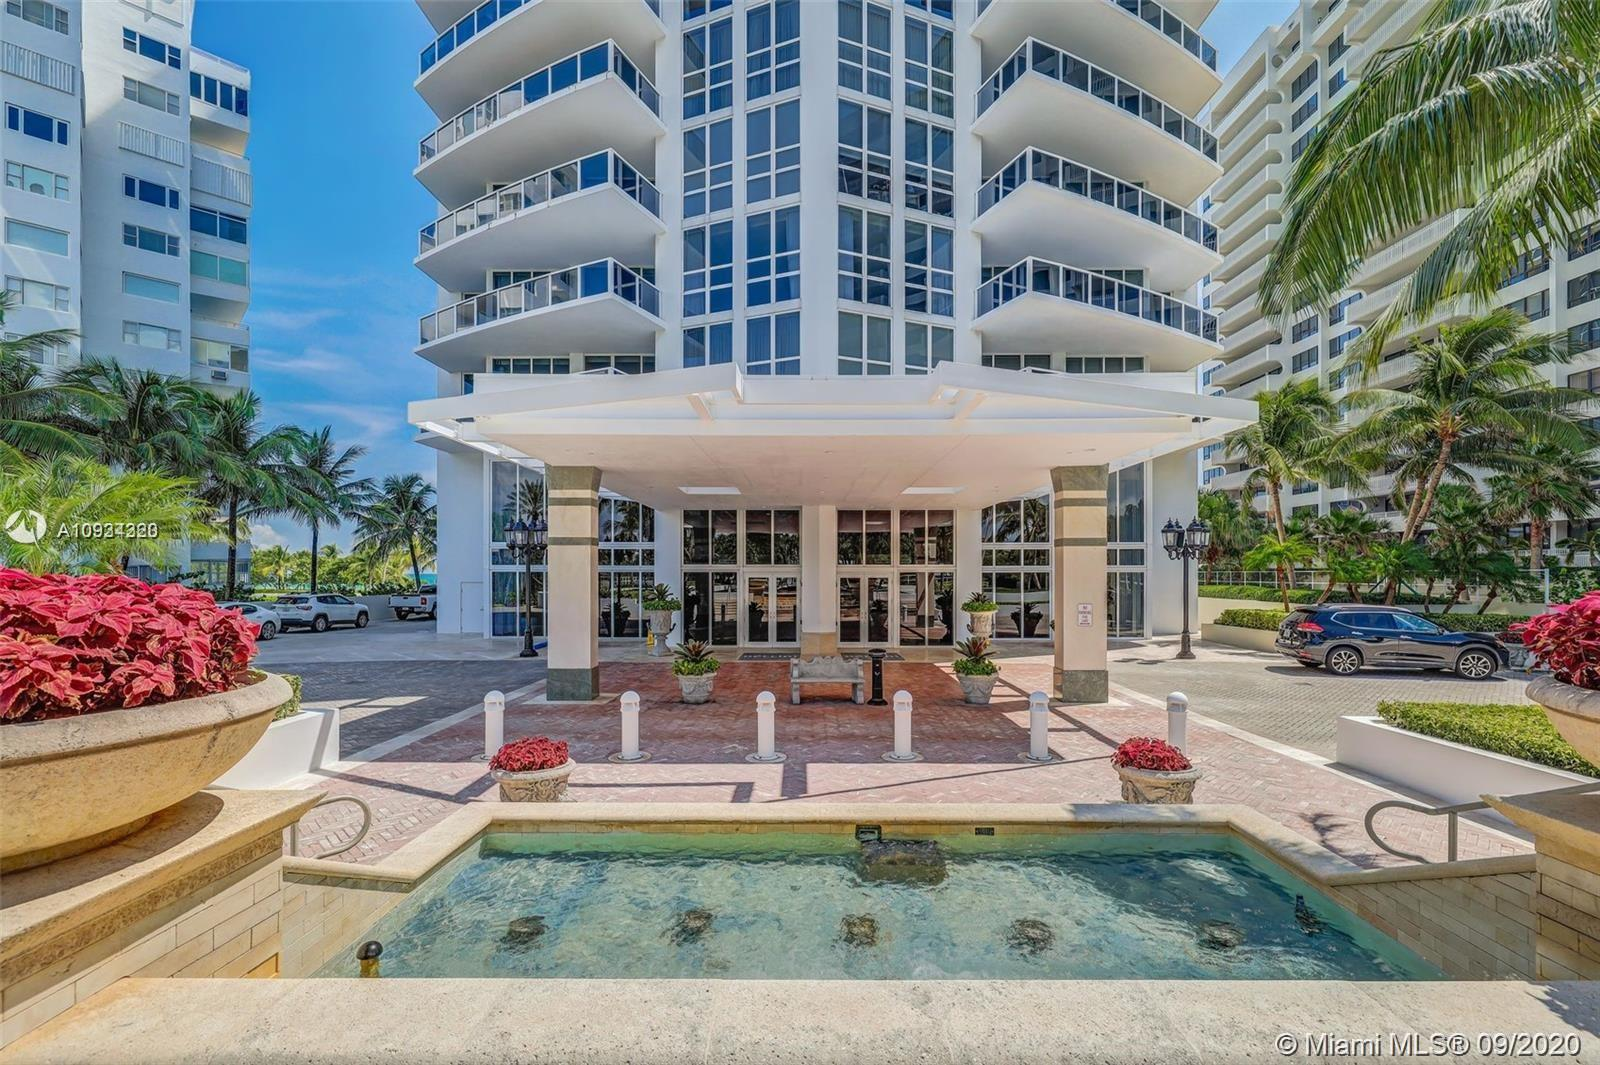 World class building in Bal Harbour. Luxurious NW corner unit on the 20th fl featuring unobstructed panoramic 270 degree views of the Ocean, Intracoastal and Miami skyline.  2918 sq ft of pure enchantment with 800 sq ft of wraparound terrace.  3 bedrooms all with spacious walk-in closets with en suite bathrooms, Maid's quarters with full bath. Private elevator, 10 foot ceilings. Open gourmet PoggenPohl kitchen. Salt water pool, modern gym, spa services, on site restaurant, hurricane impact windows. Walk to Bal Harbour Shops. Pets allowed. 24 hour concierge.